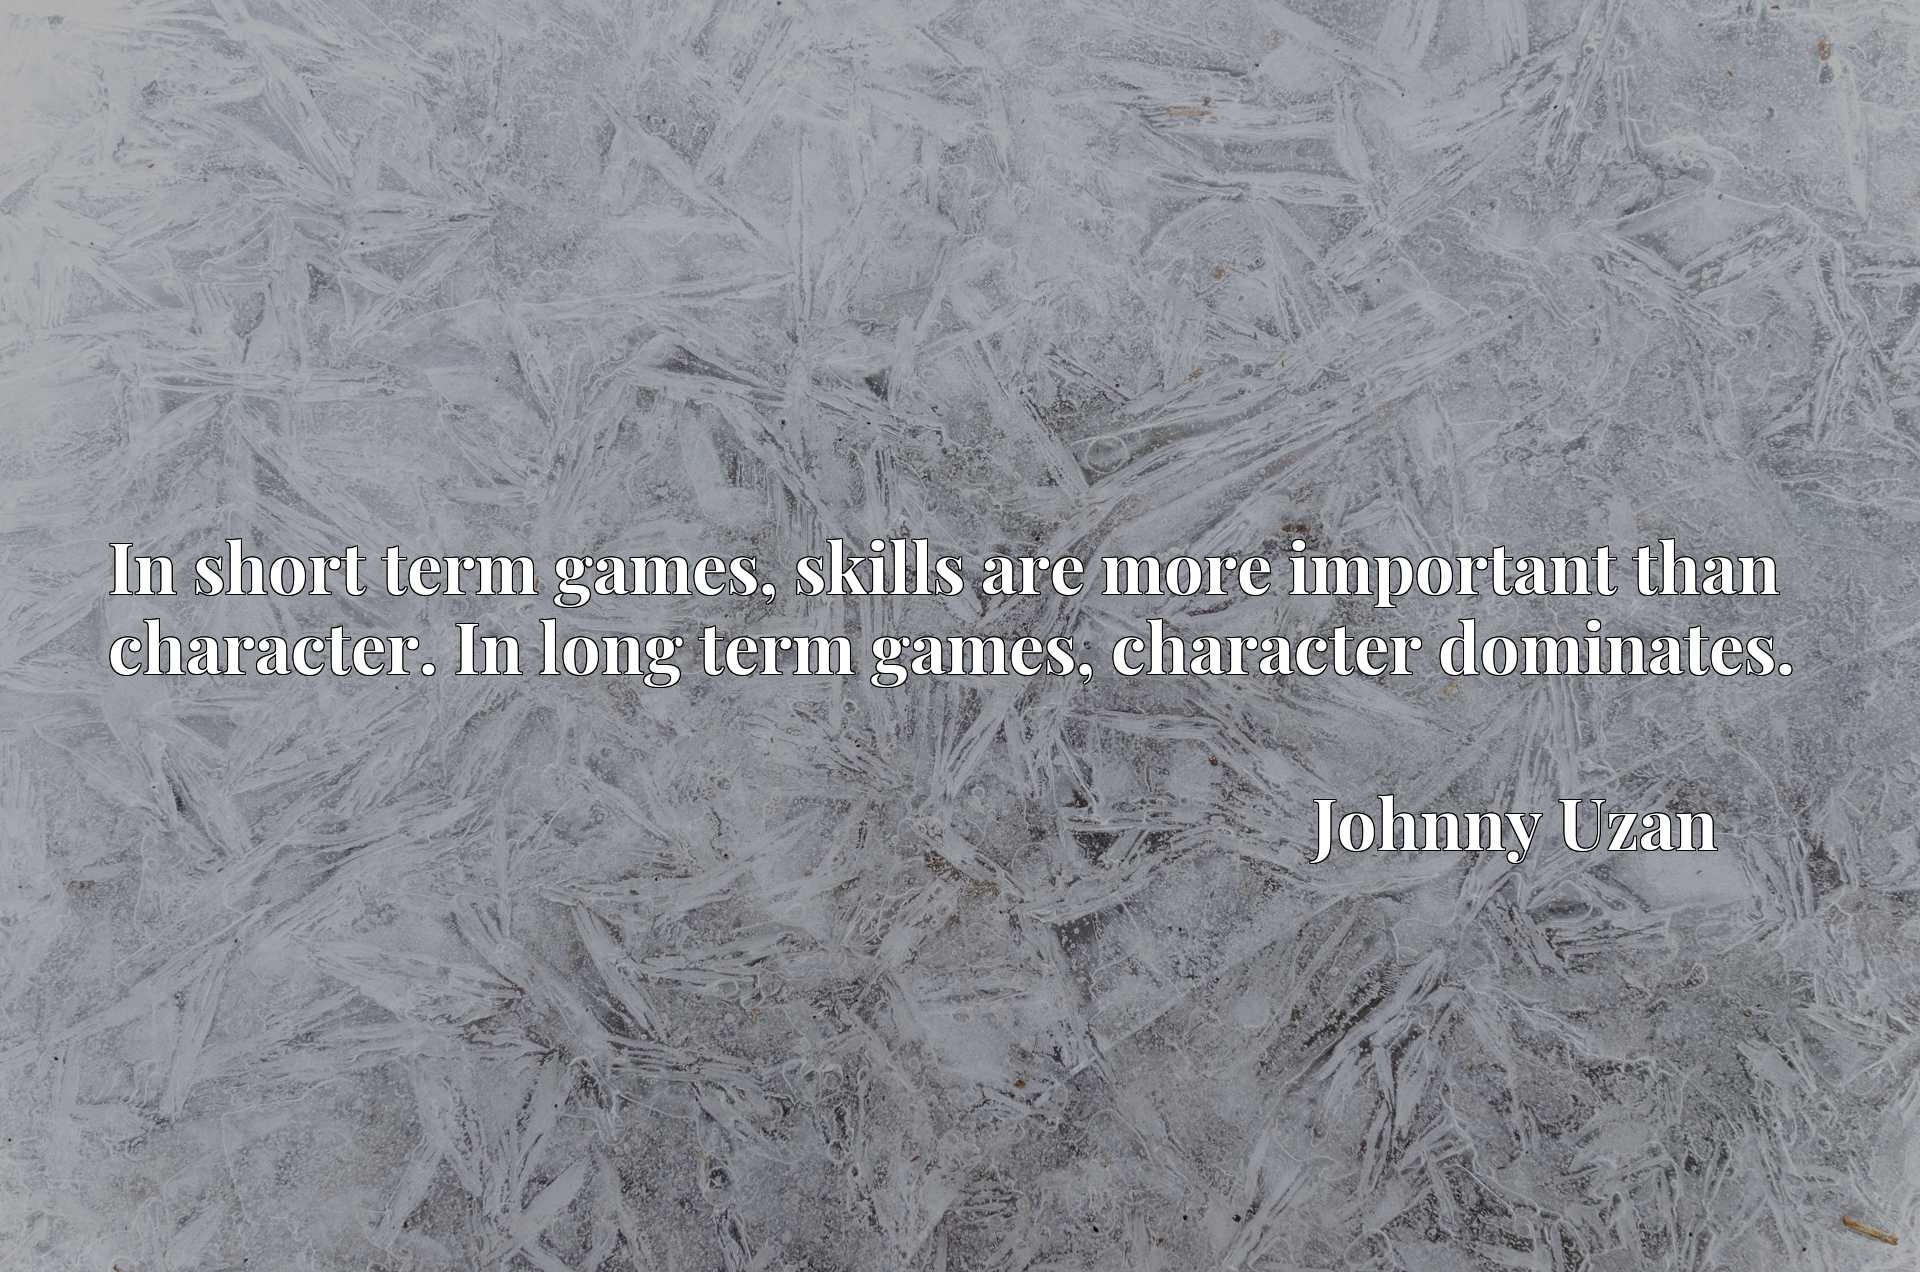 In short term games, skills are more important than character. In long term games, character dominates.